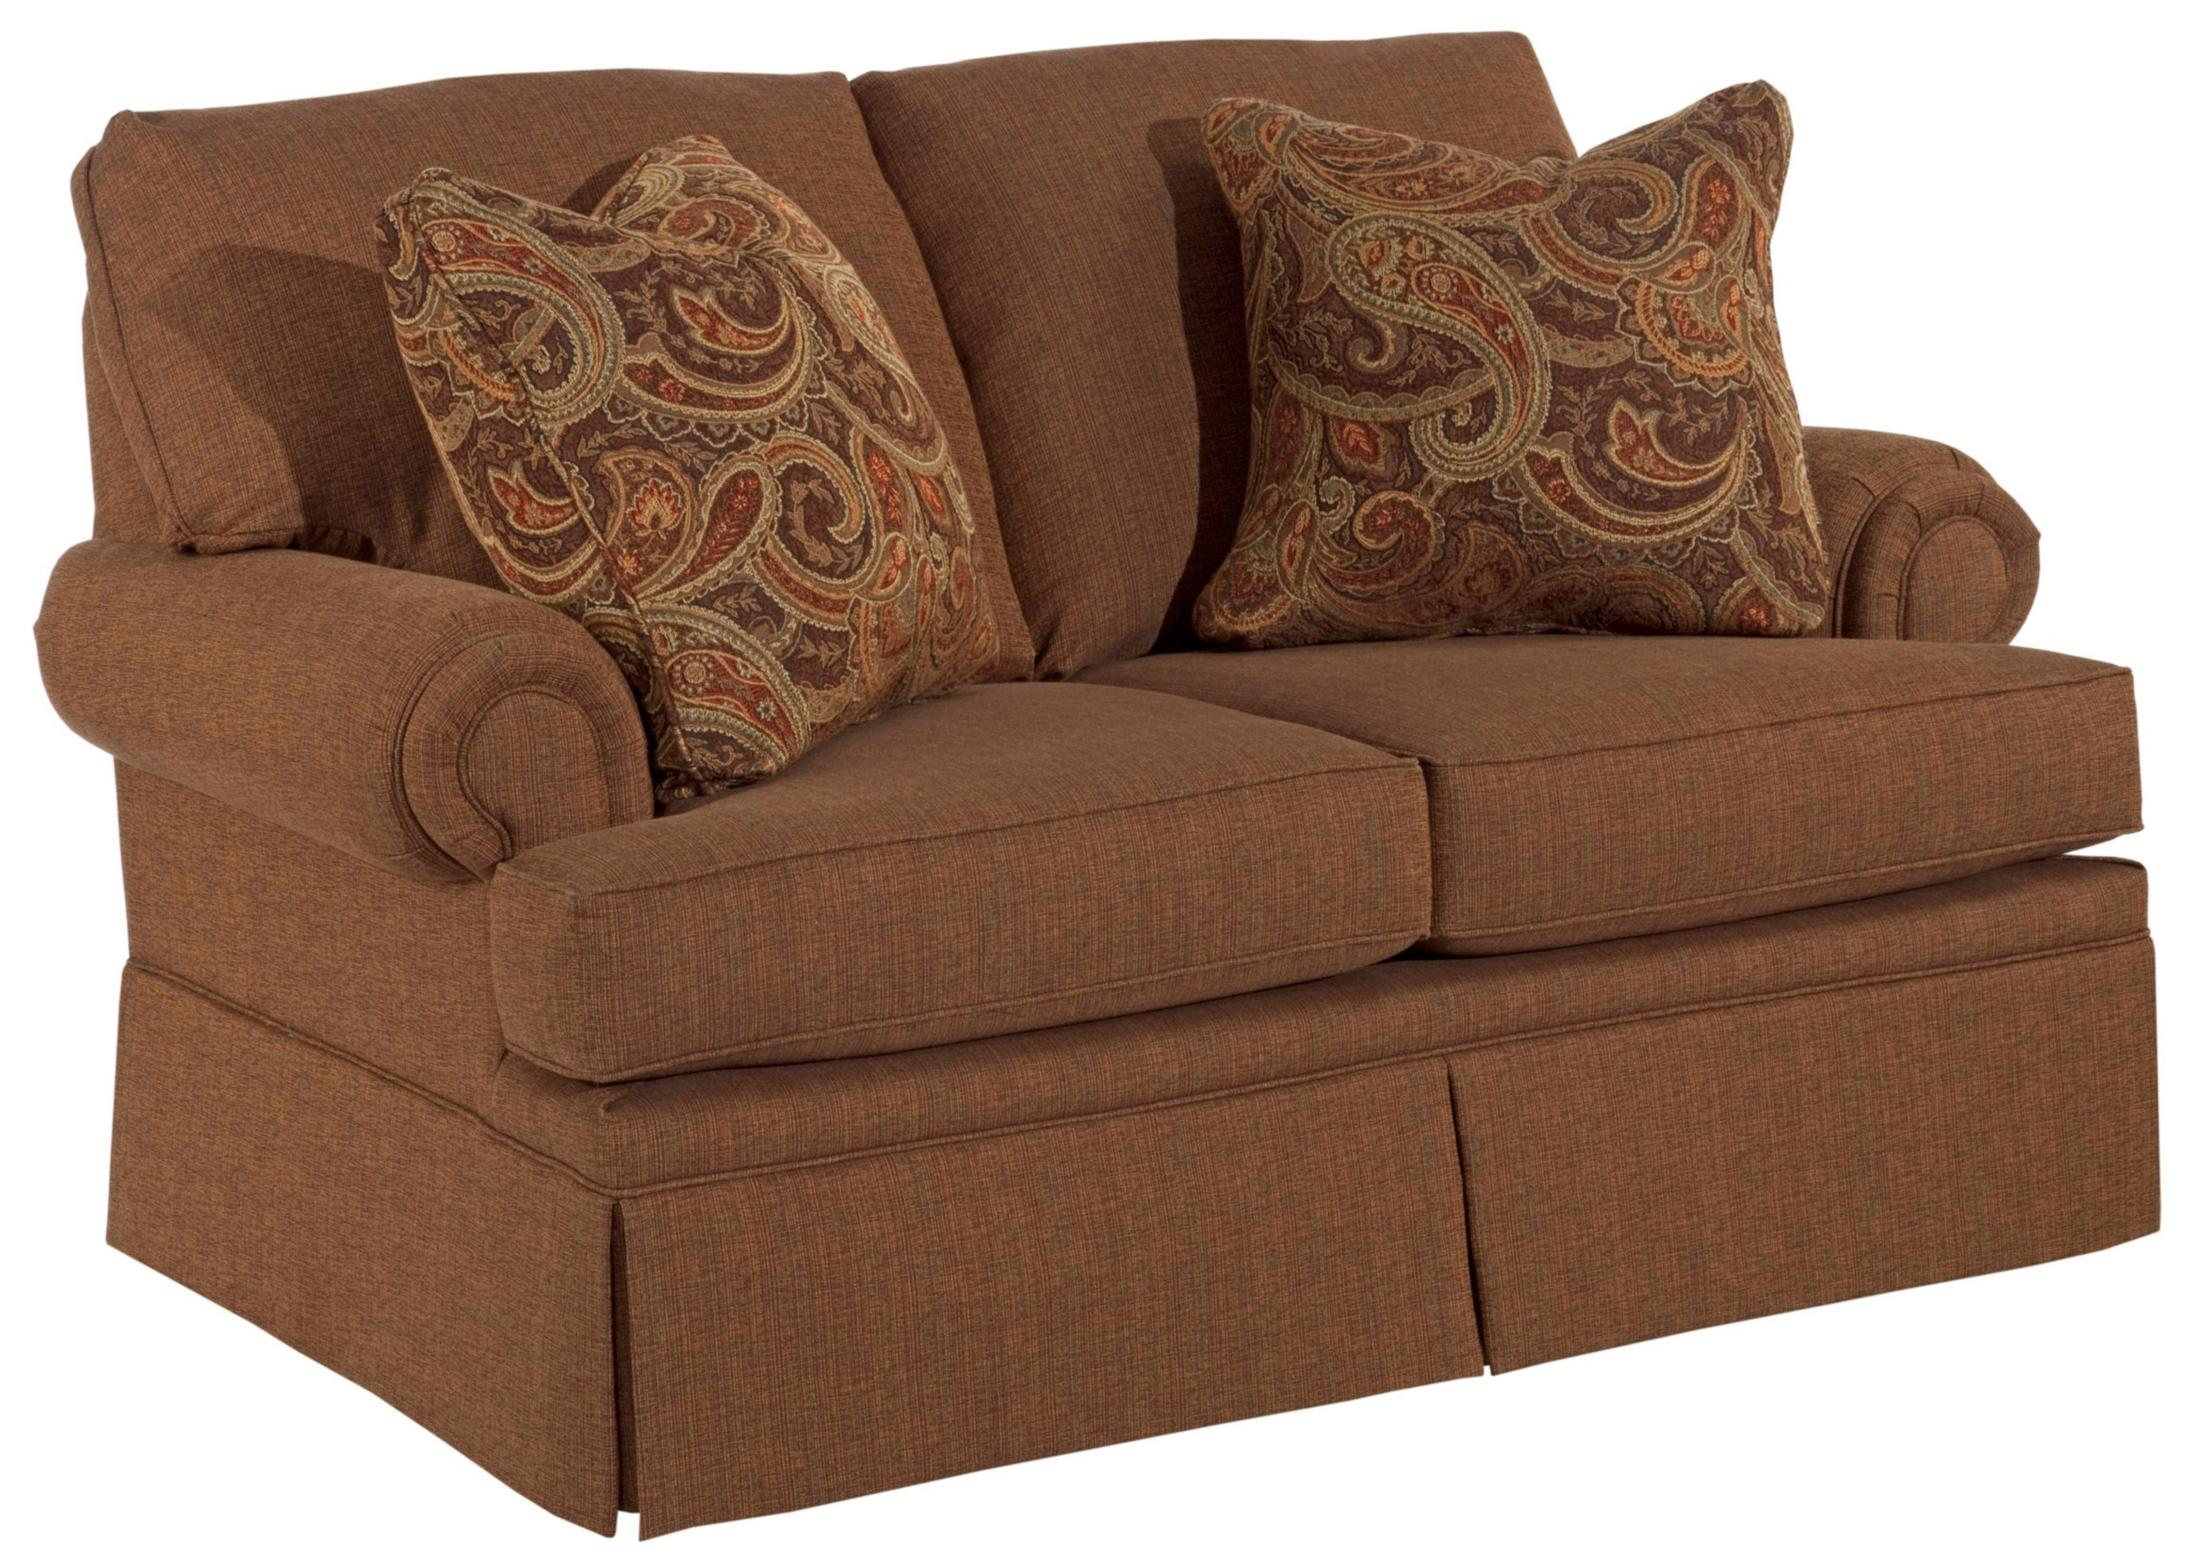 Broyhill Furniture Jenna Twin Goodnight Sleeper - Item Number: 4342-8